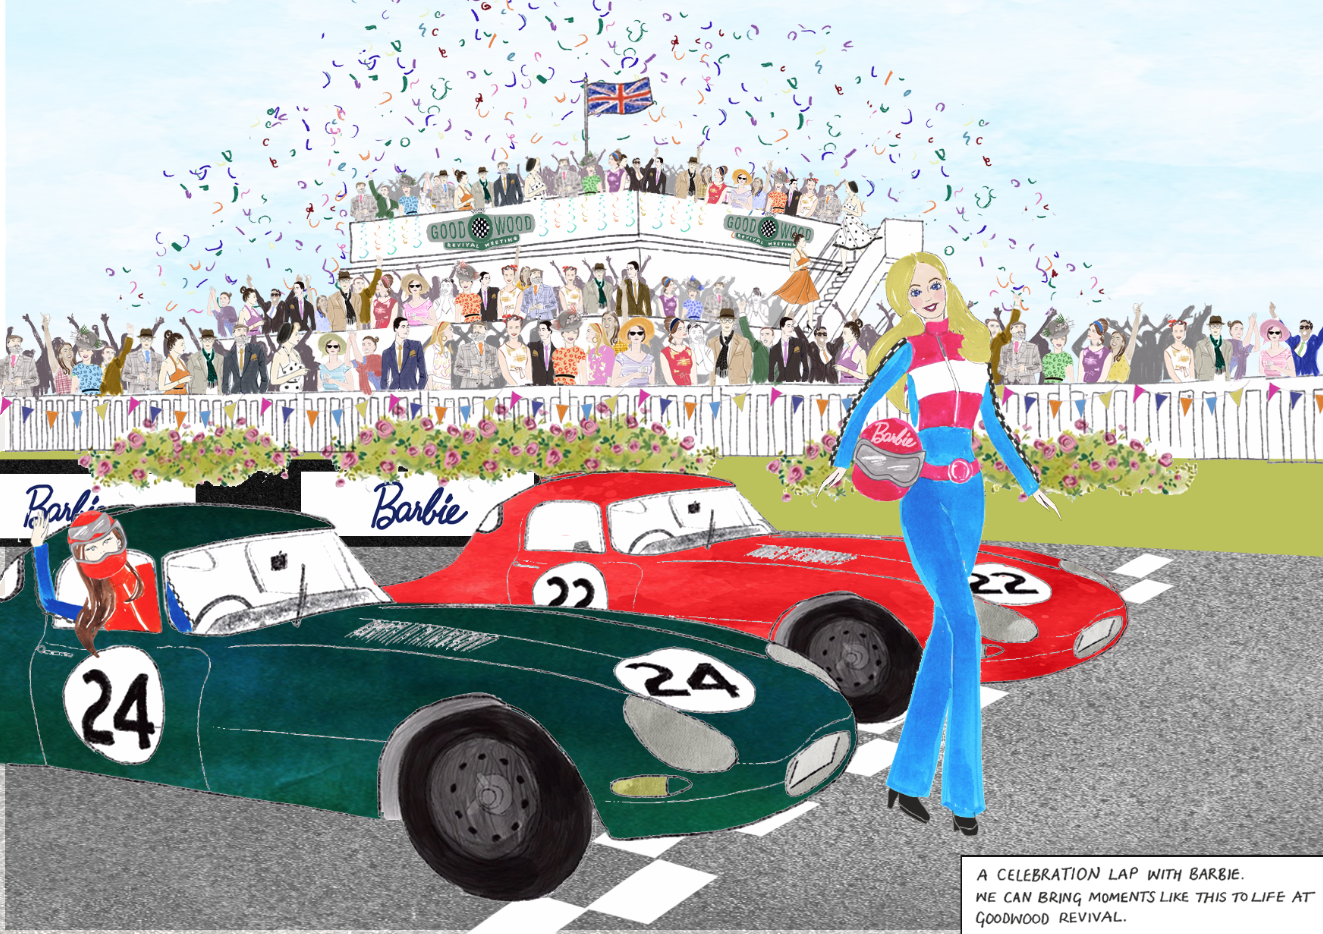 Goodwood Festival Illustration and Barbie